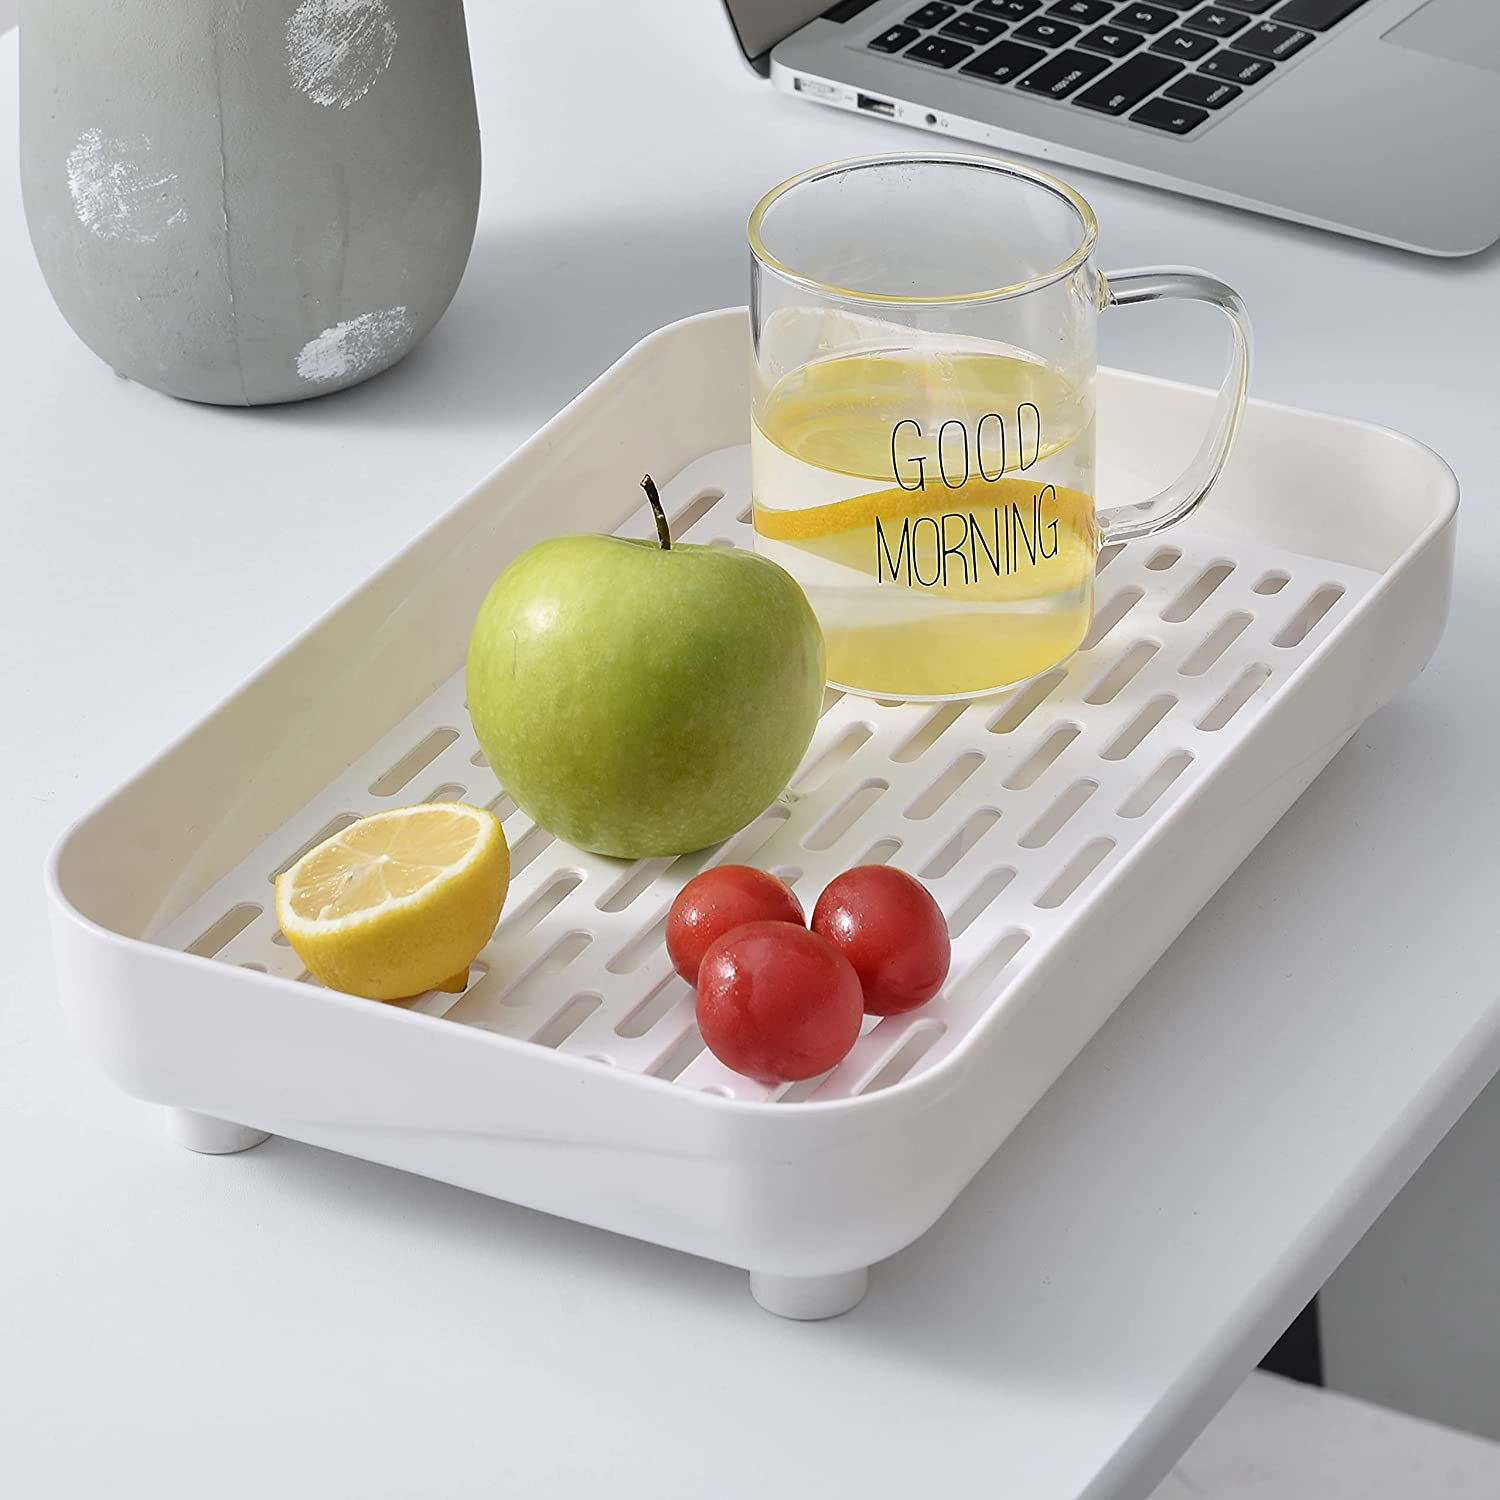 Umelife Plastic Serving Trays for Eating with Drain Board,Integrated Food Tray and Dish Drainer in One Serving Platter,Raised Bottom and Rim,Non-Slip Feet-White,1 Piece,13